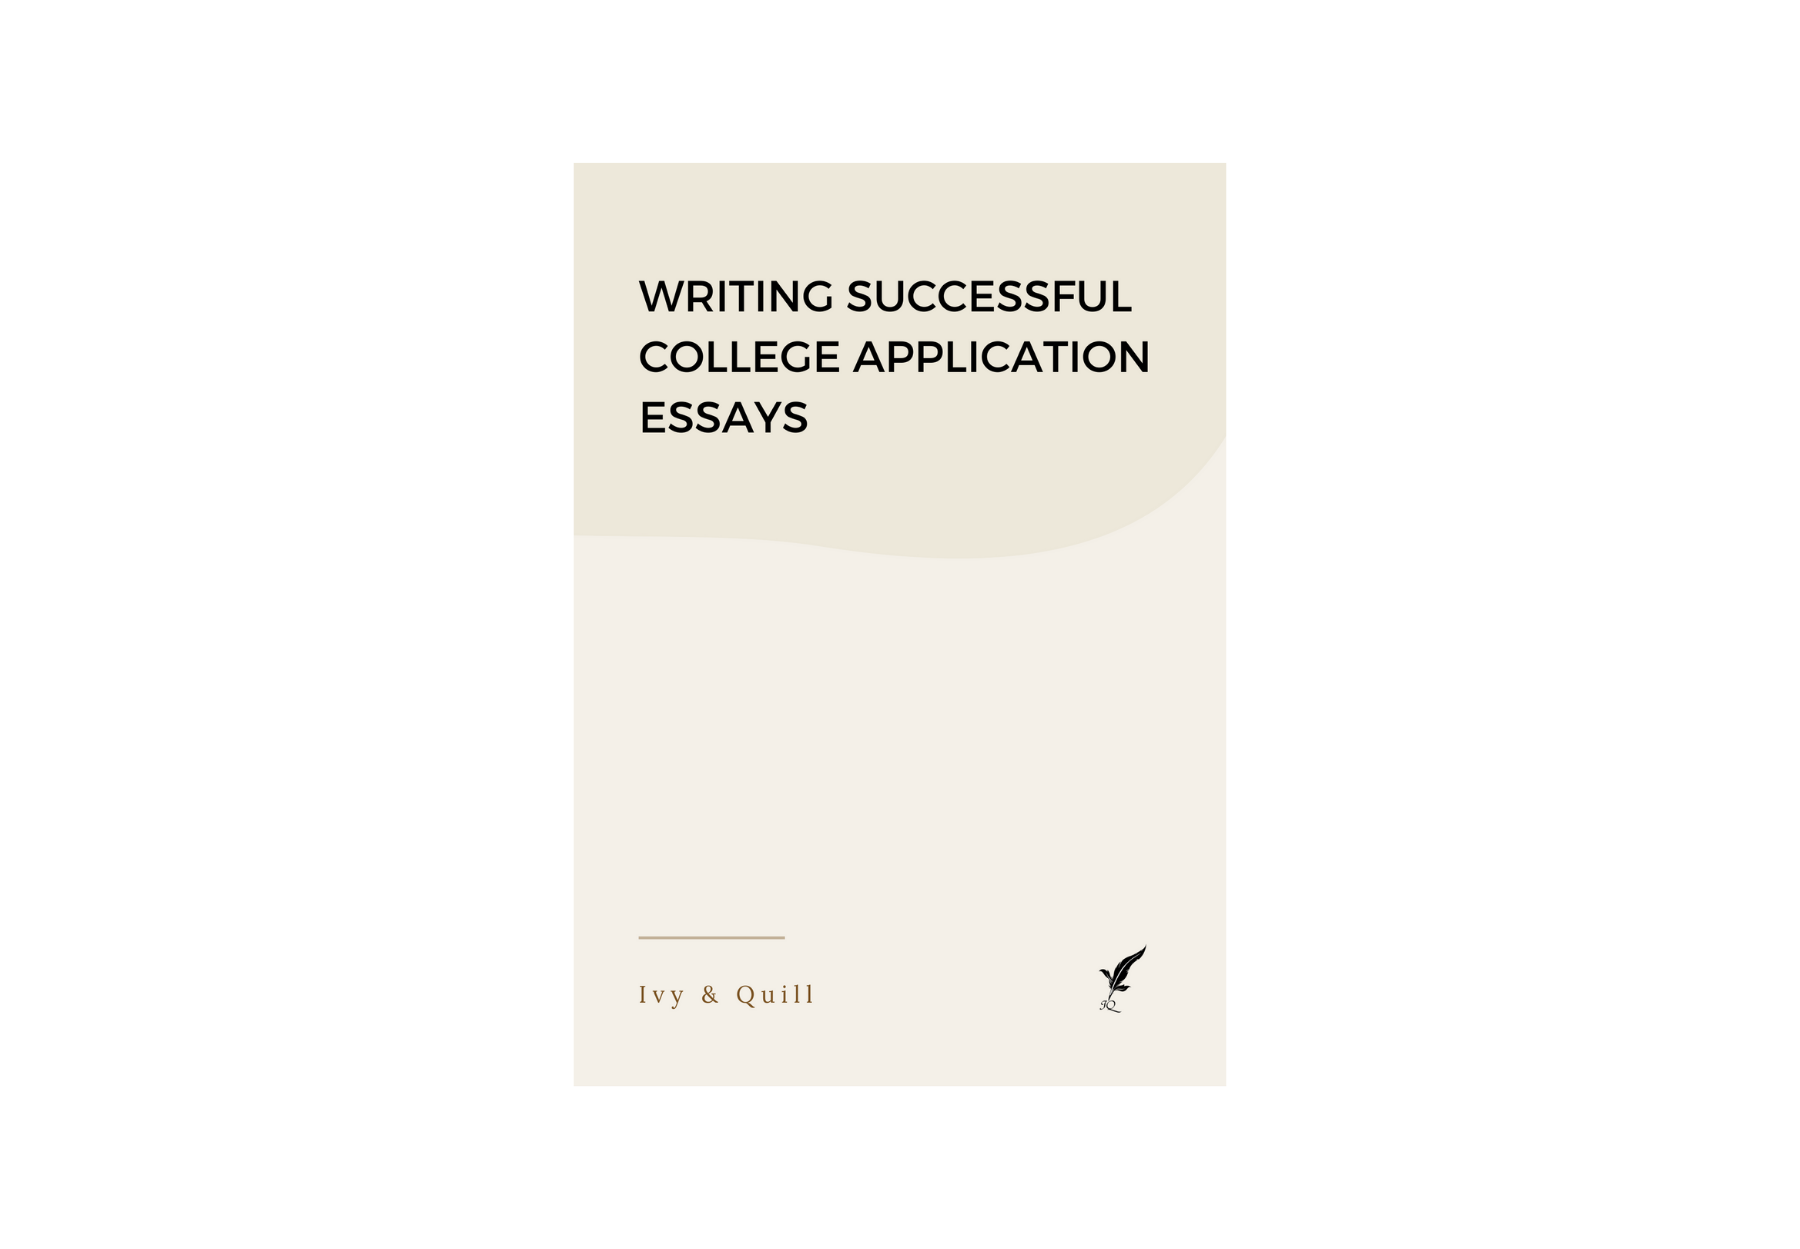 Ivy & Quill - Writing Successful College Application Essays